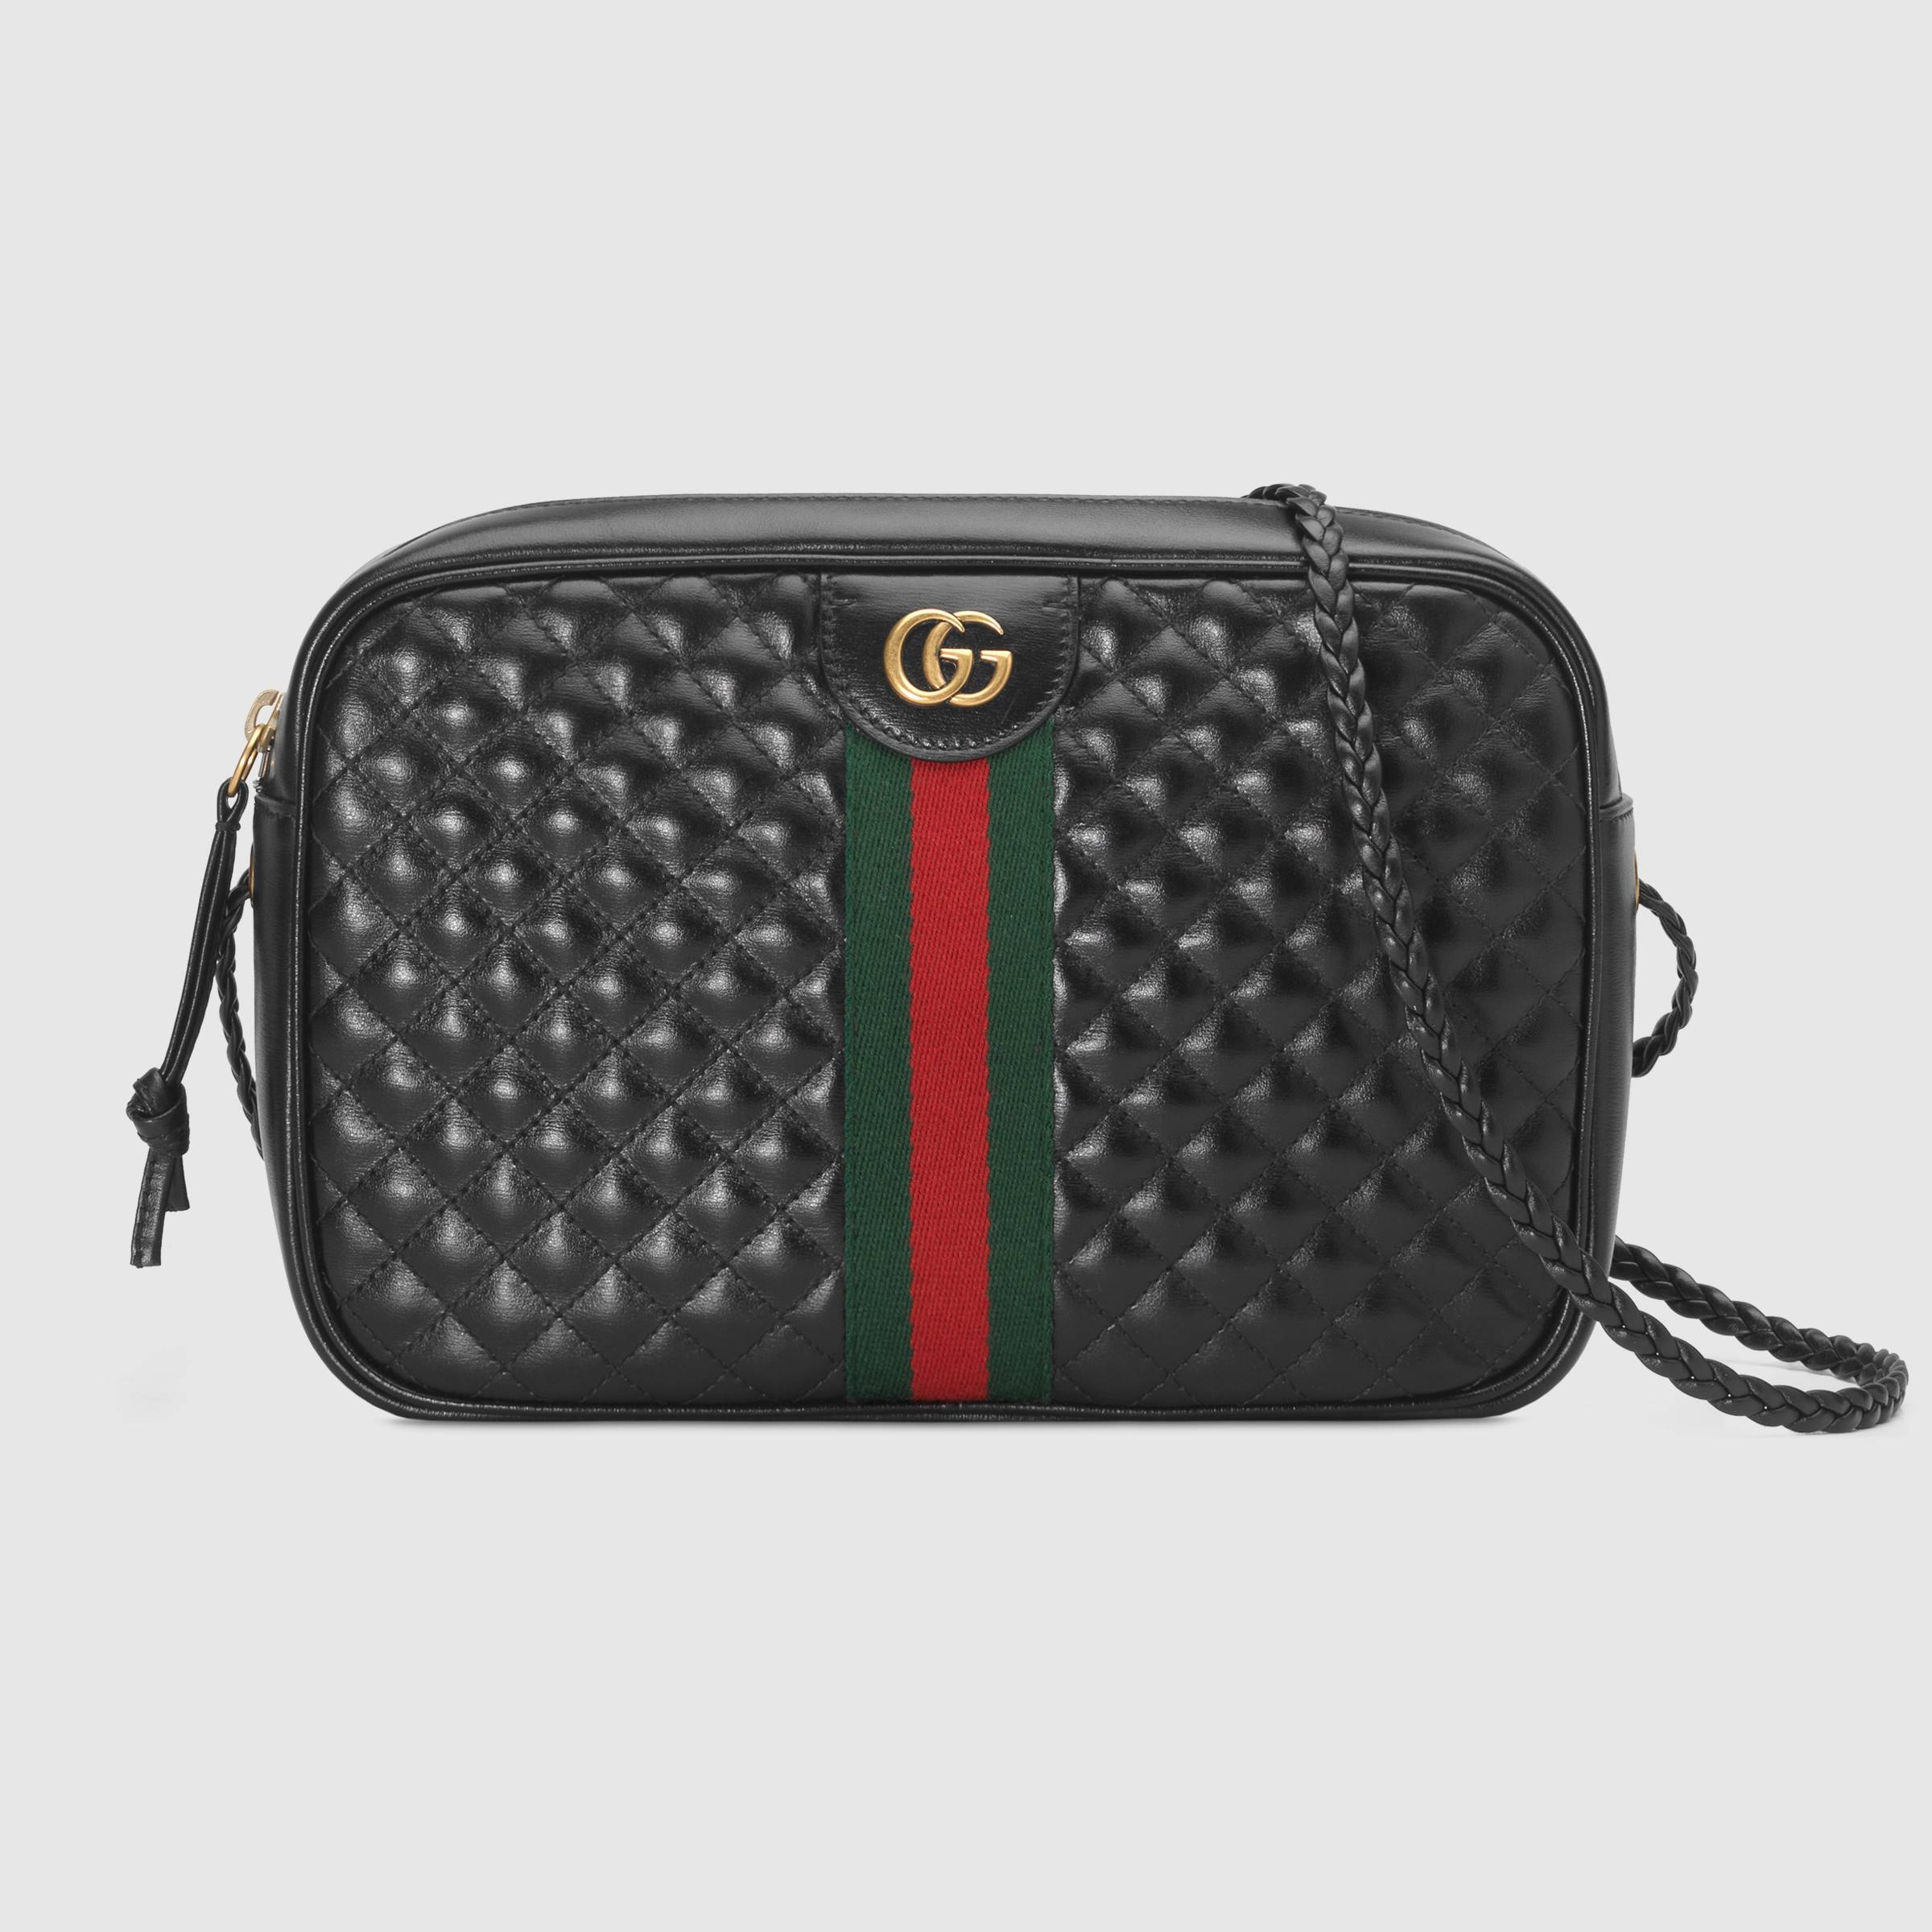 171058d82297 ... about GUCCI handbags. Quilted%20leather%20small%20shoulder%20b